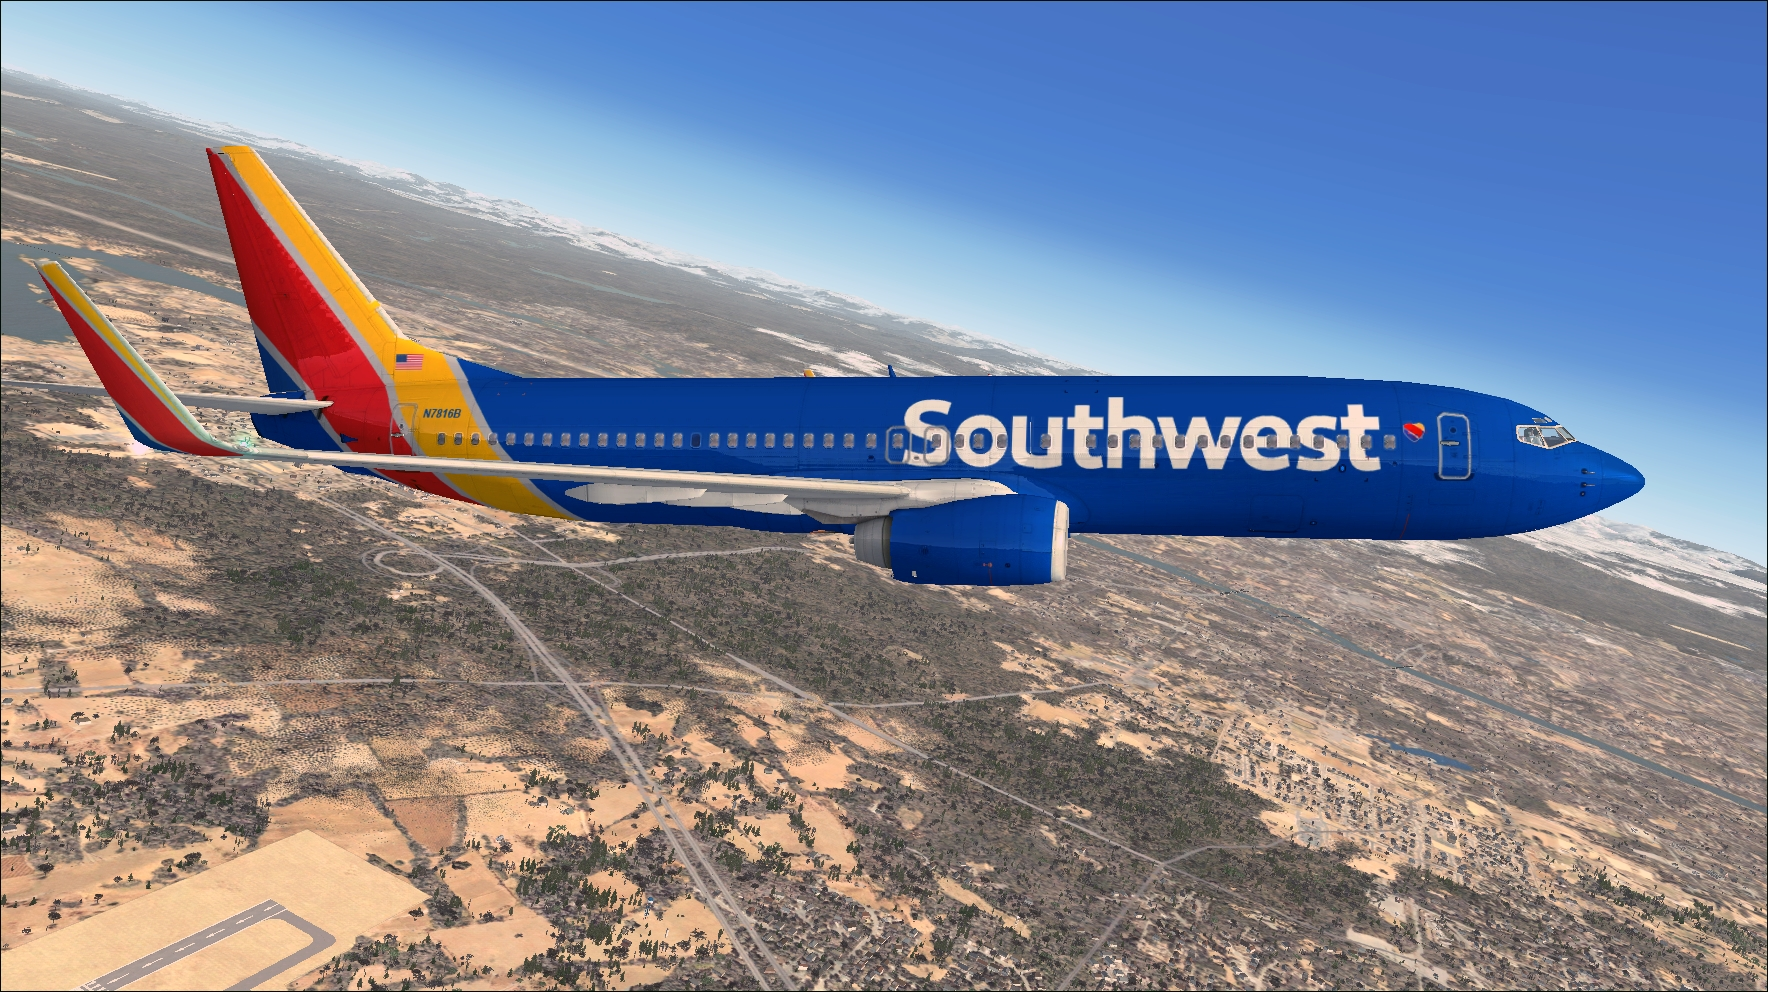 PERFECT FLIGHT - FSX MISSIONS SOUTHWEST